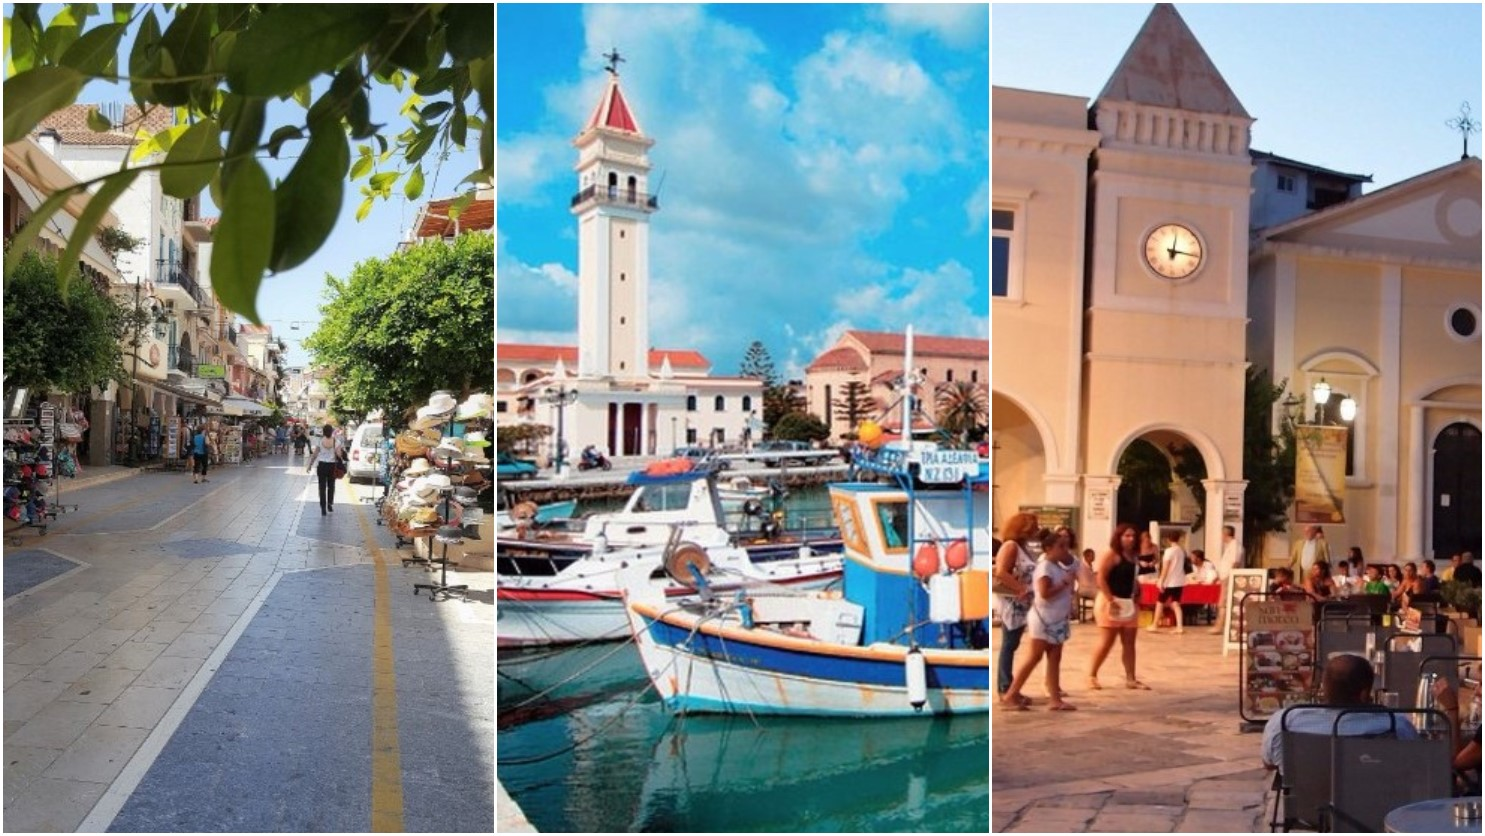 Explore the local area - Zante shopping | Zante harbour | St.Mark's Square